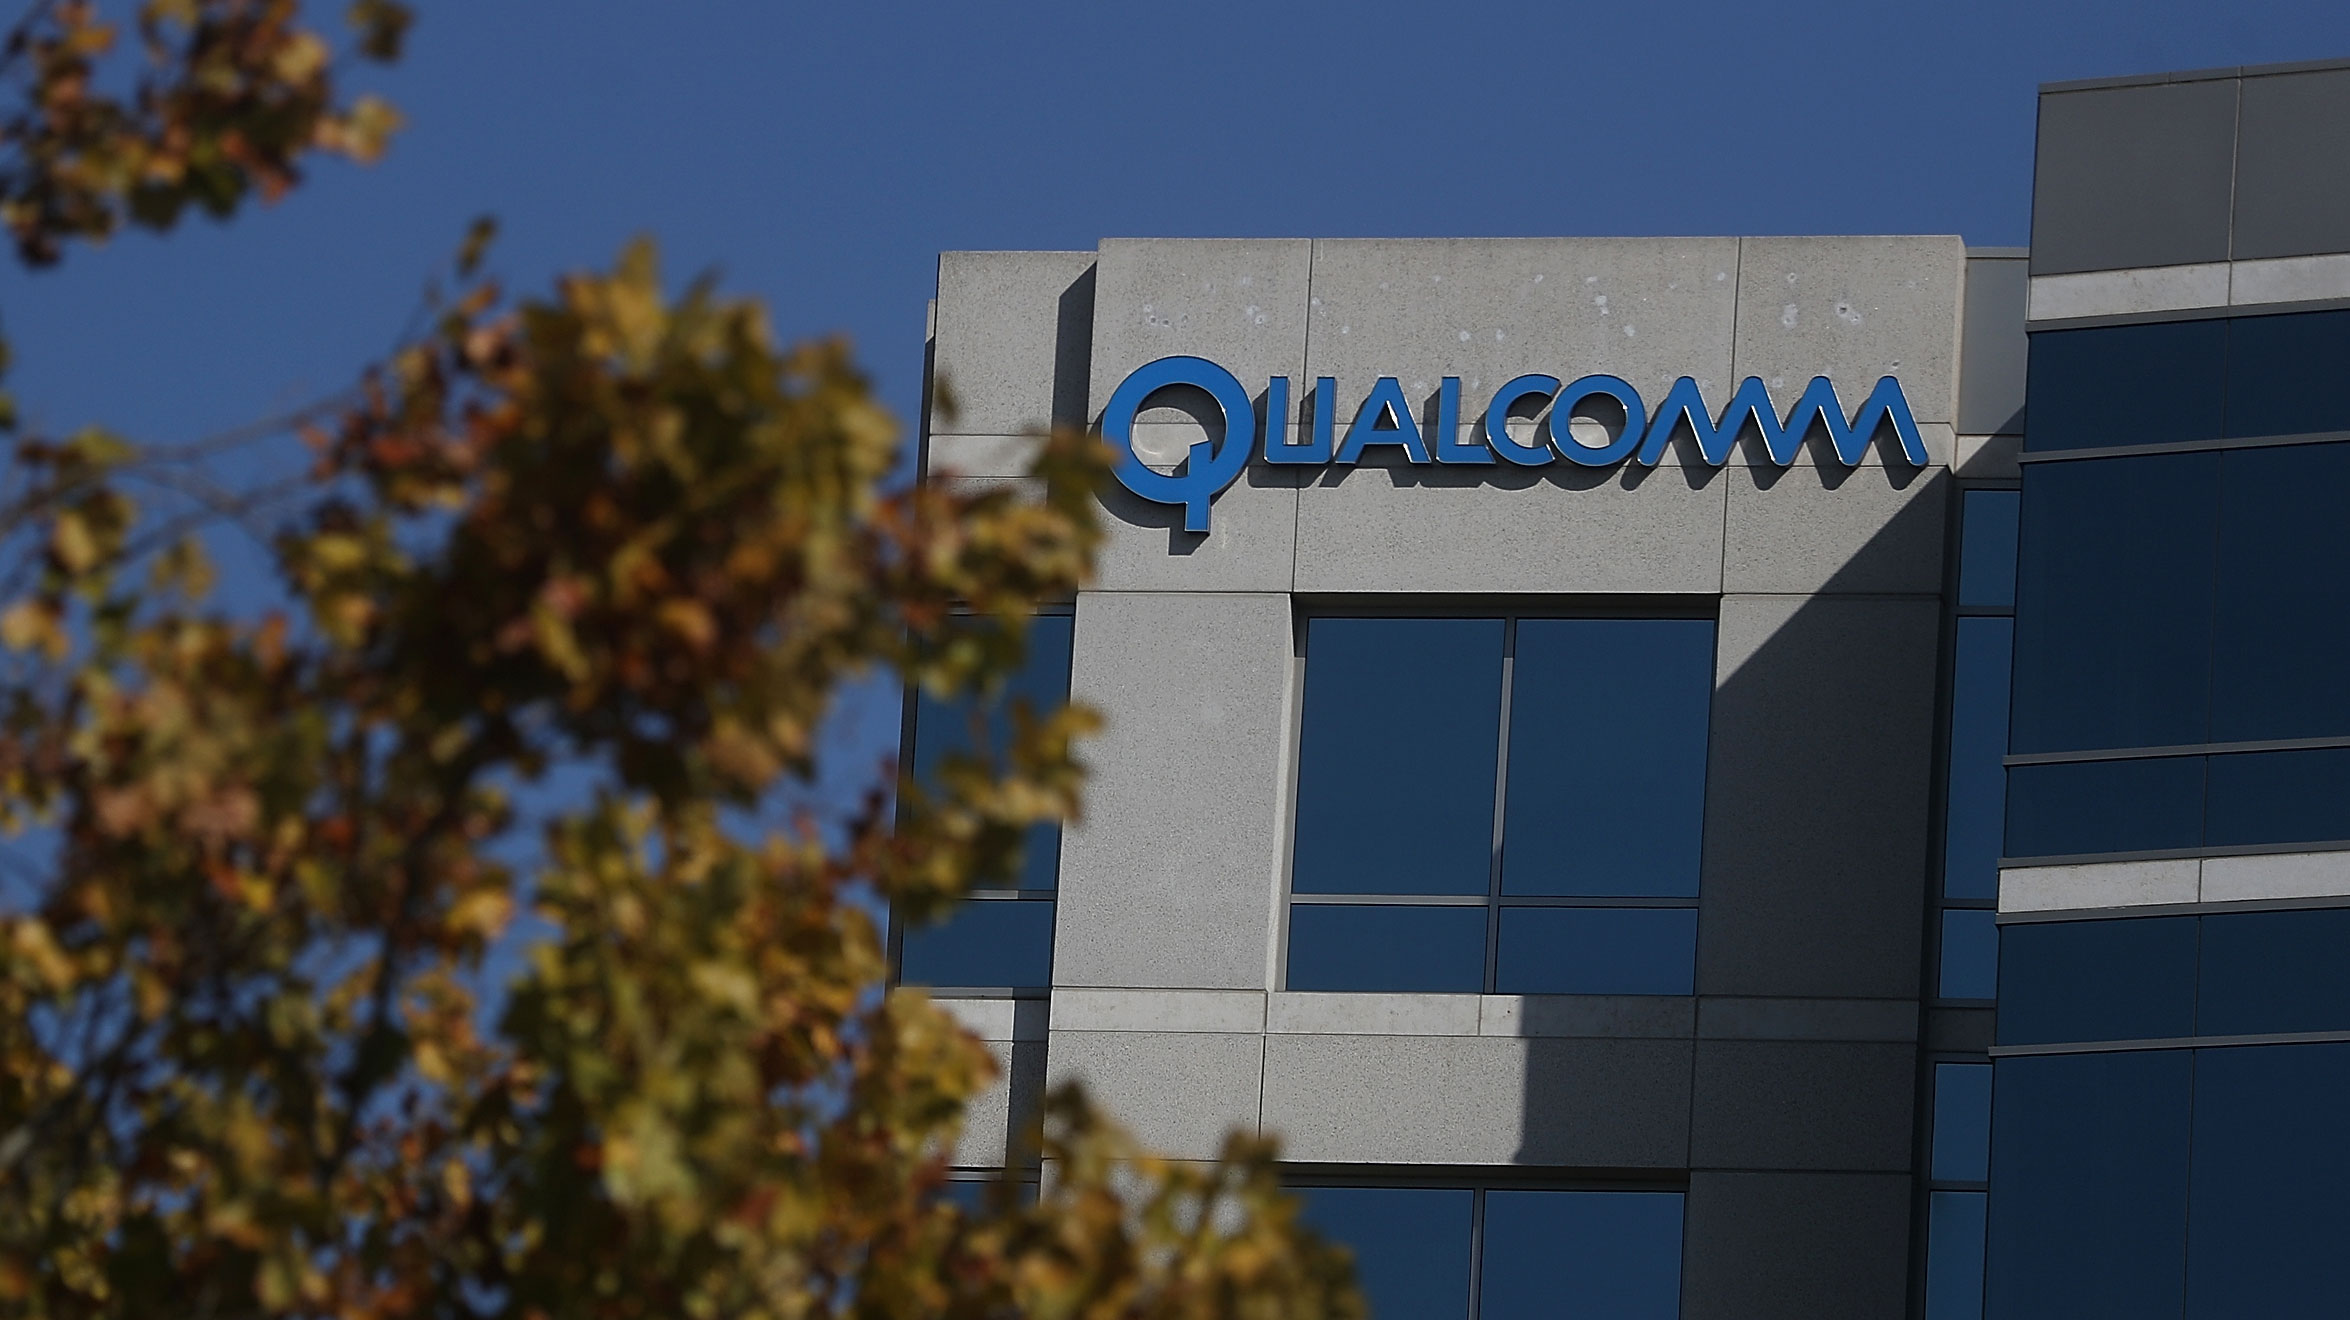 The Snapdragon 845 is Qualcomm's next flagship processor